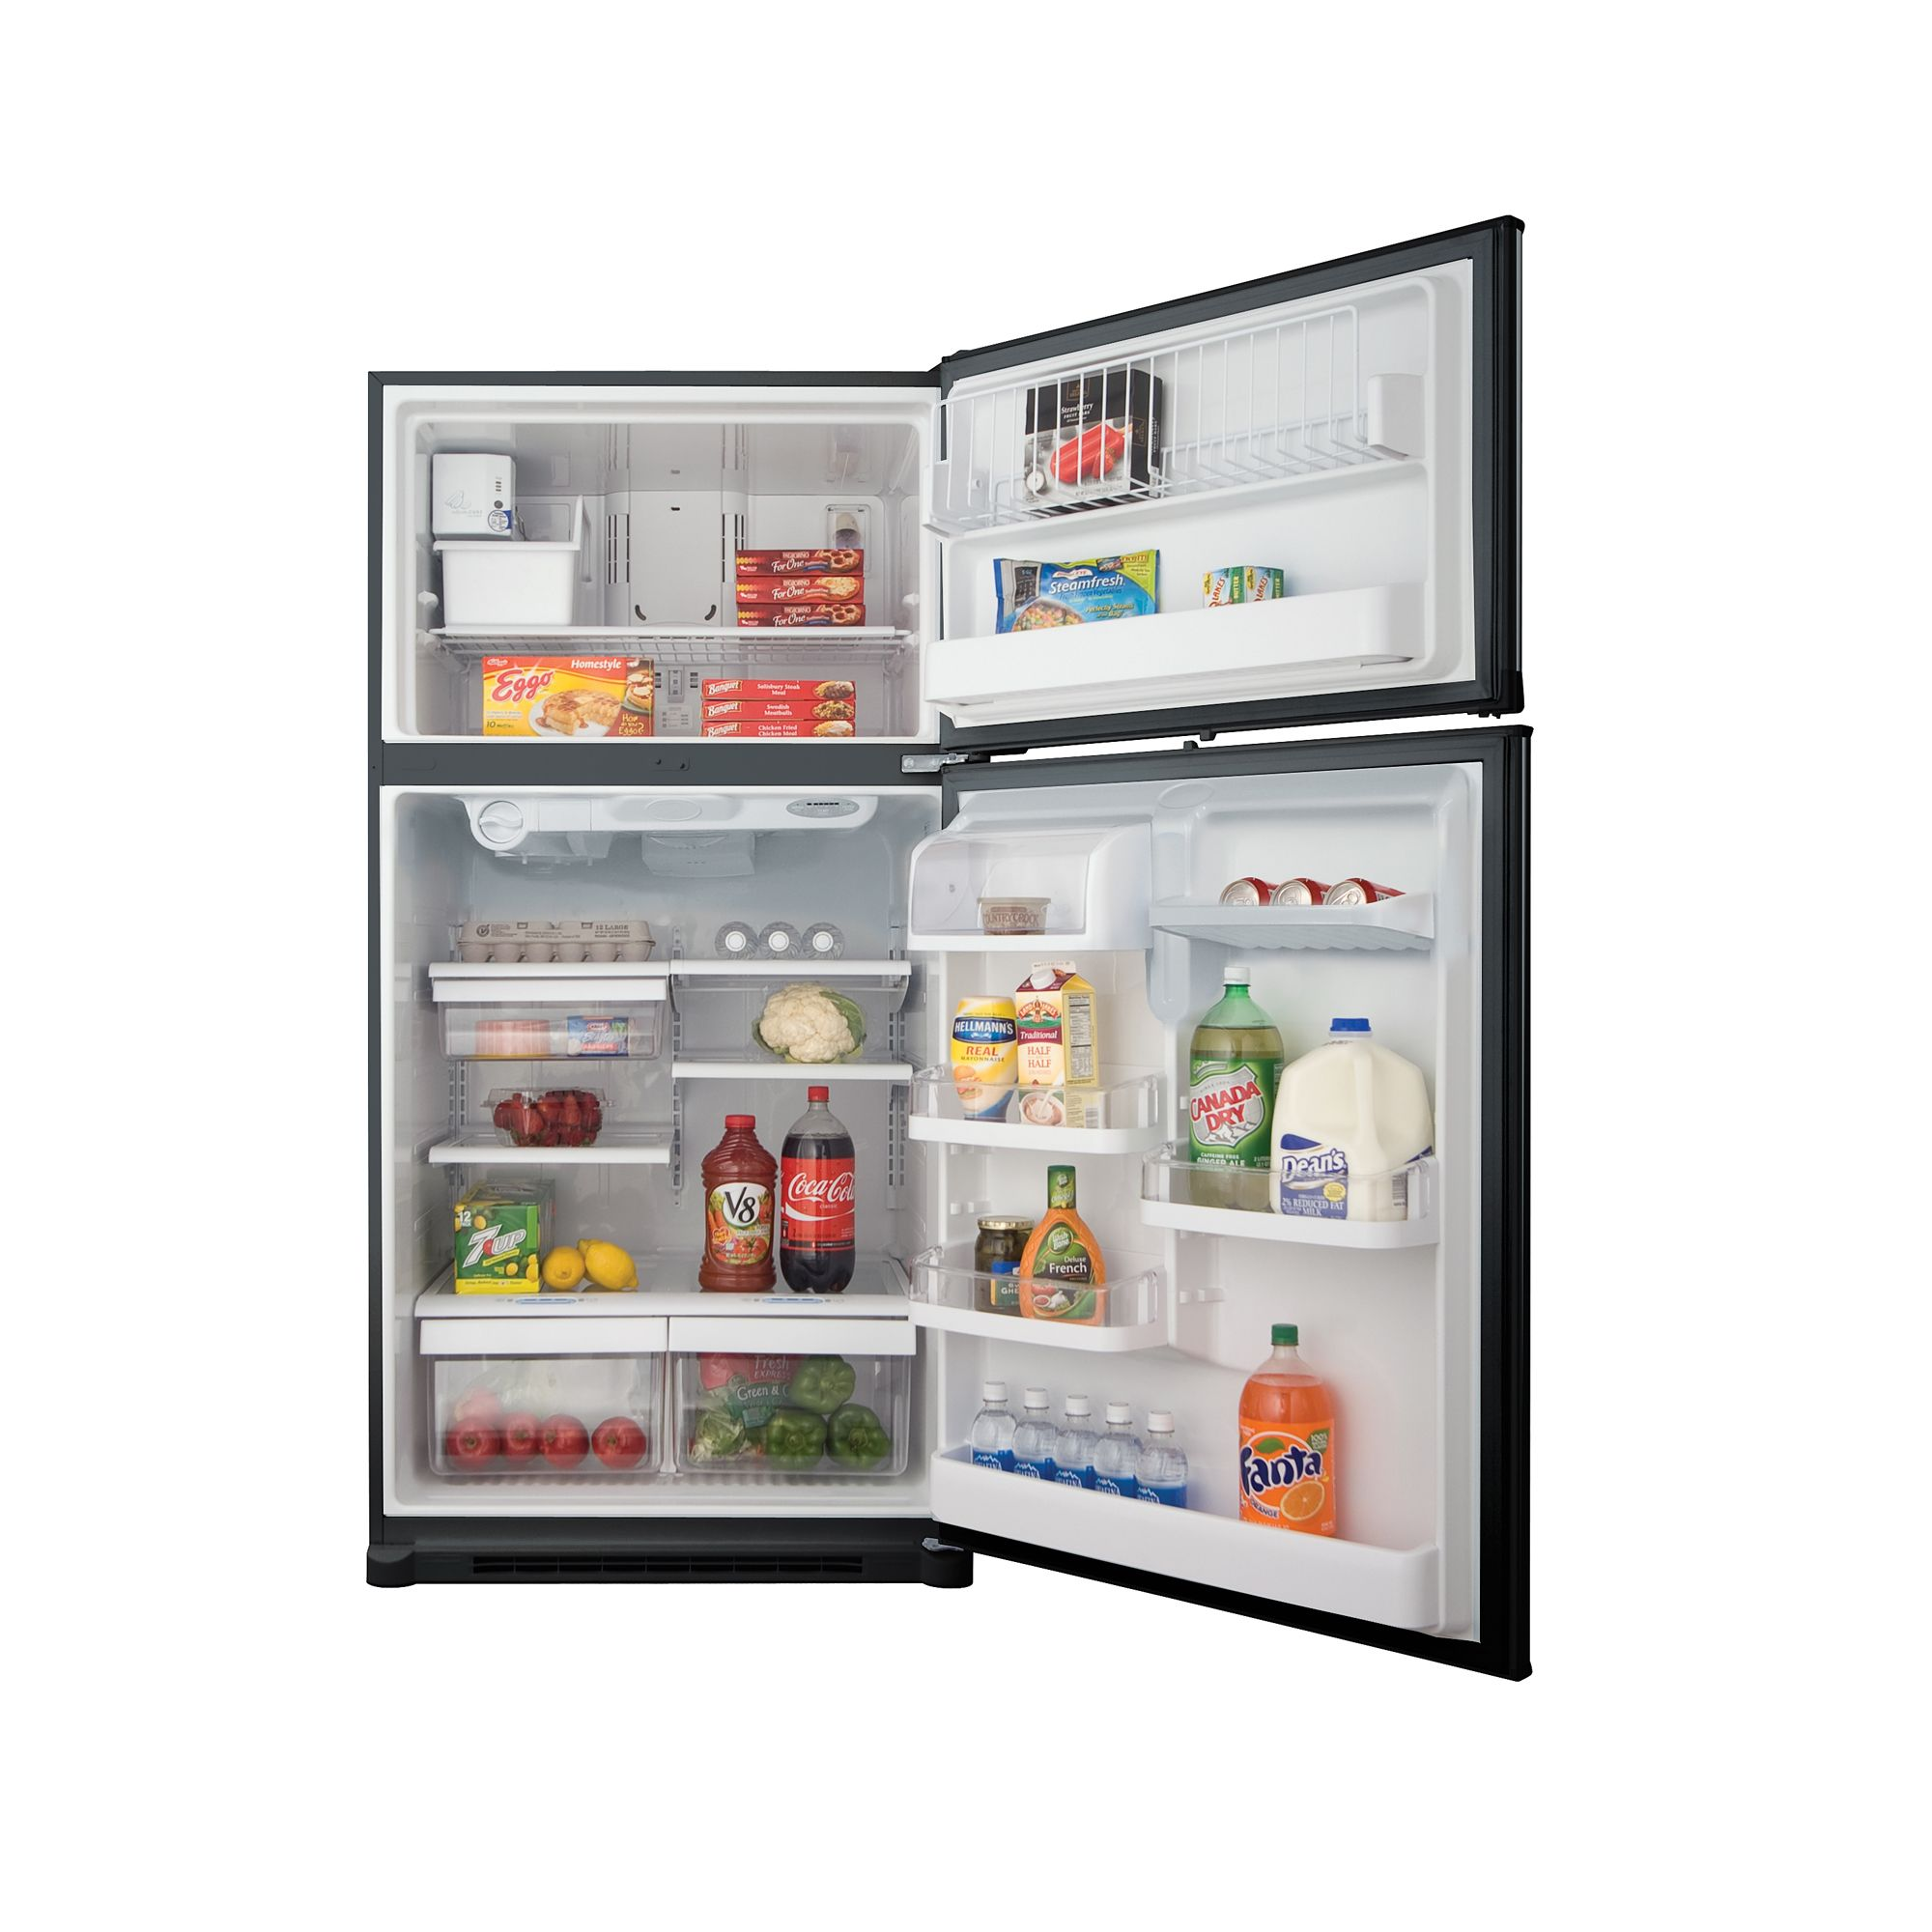 Kenmore 22.0 cu. ft. Top Freezer Refrigerator (7531)